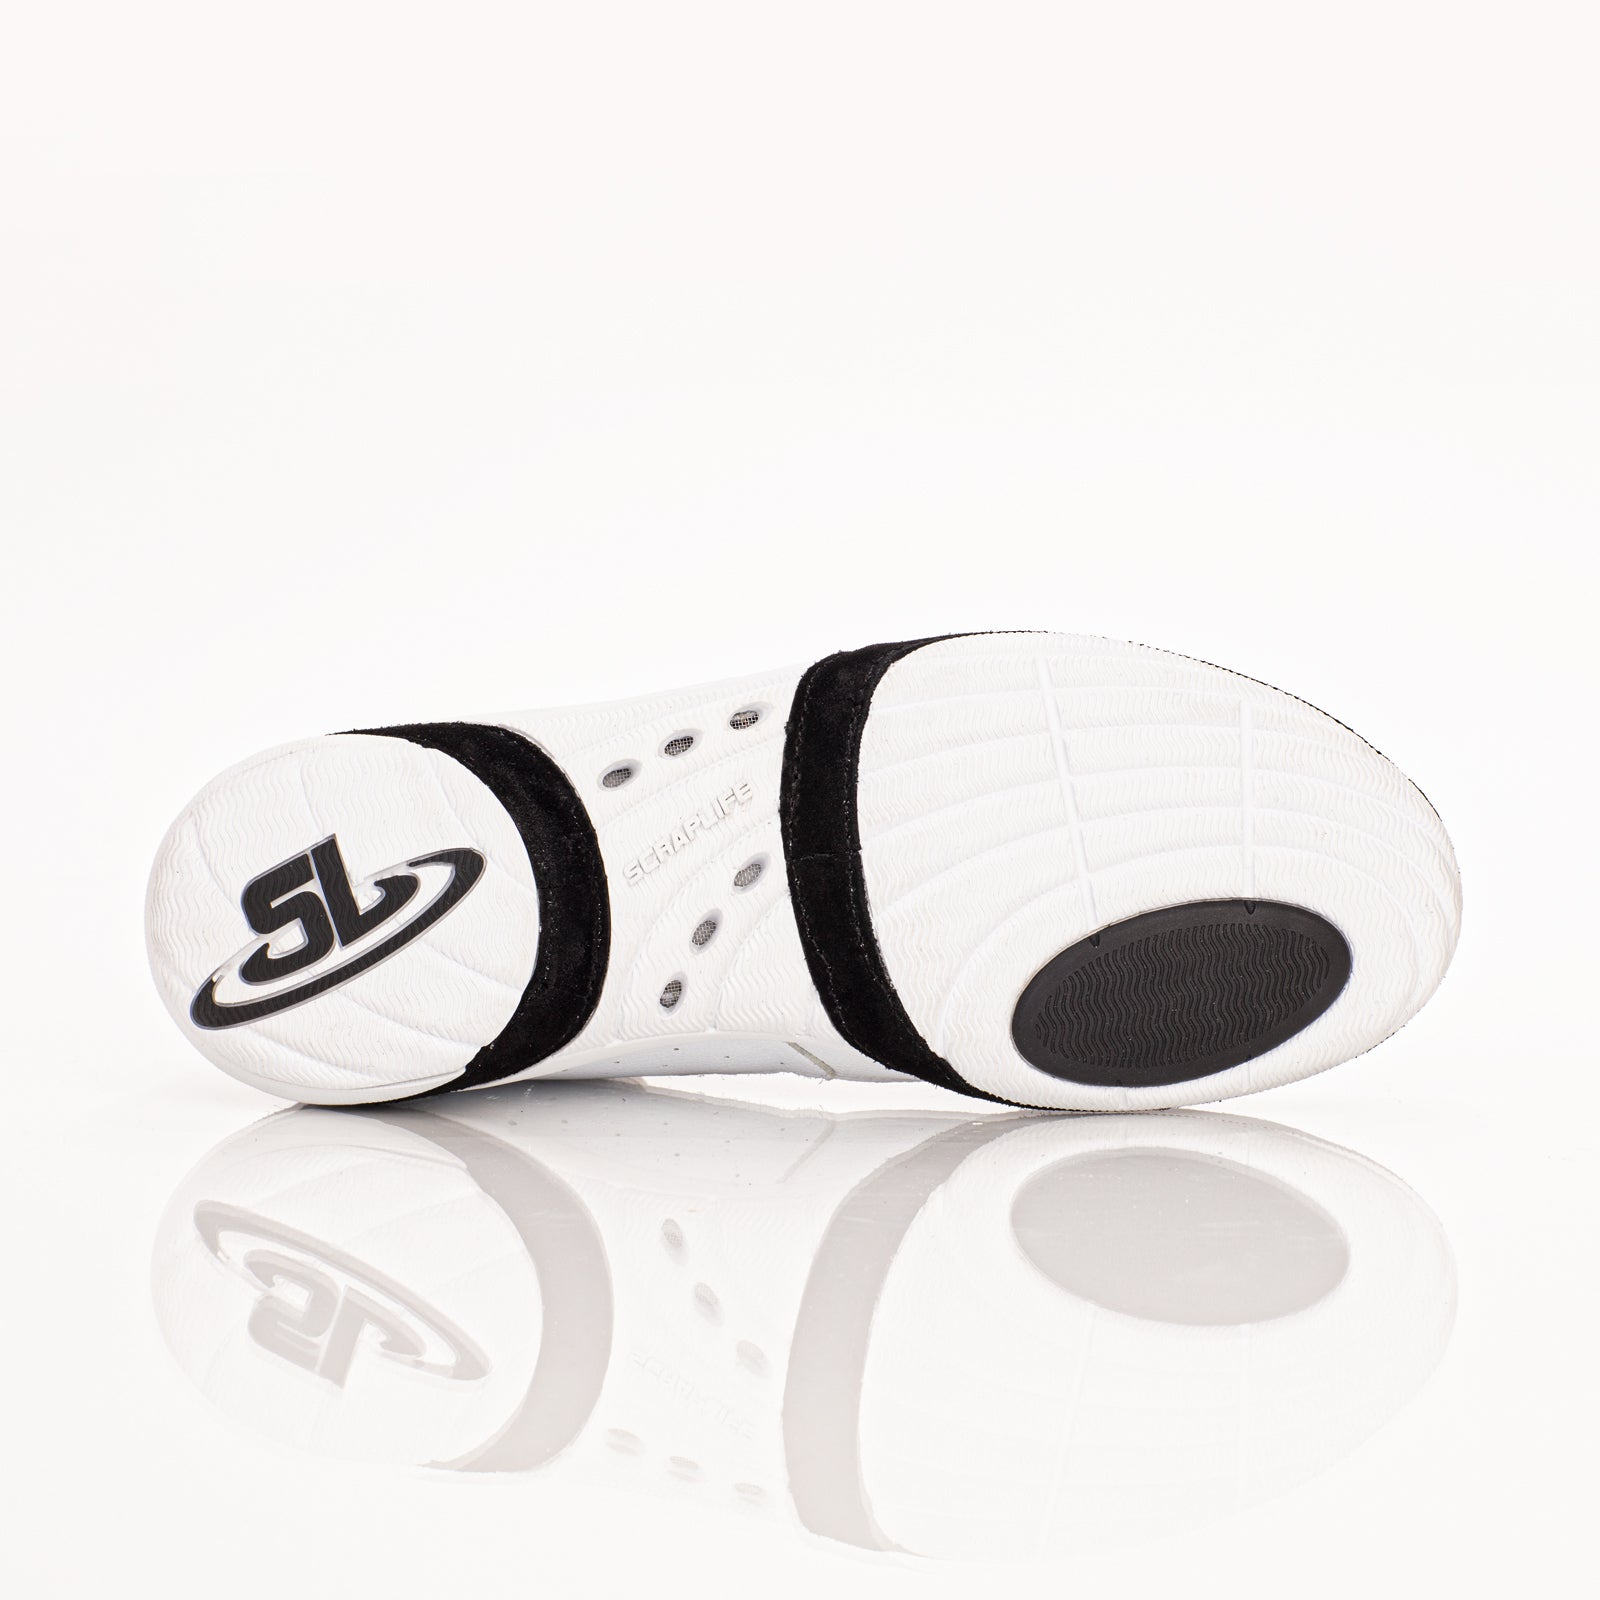 Ascend One - Youth David Taylor Signature Model - White/Black